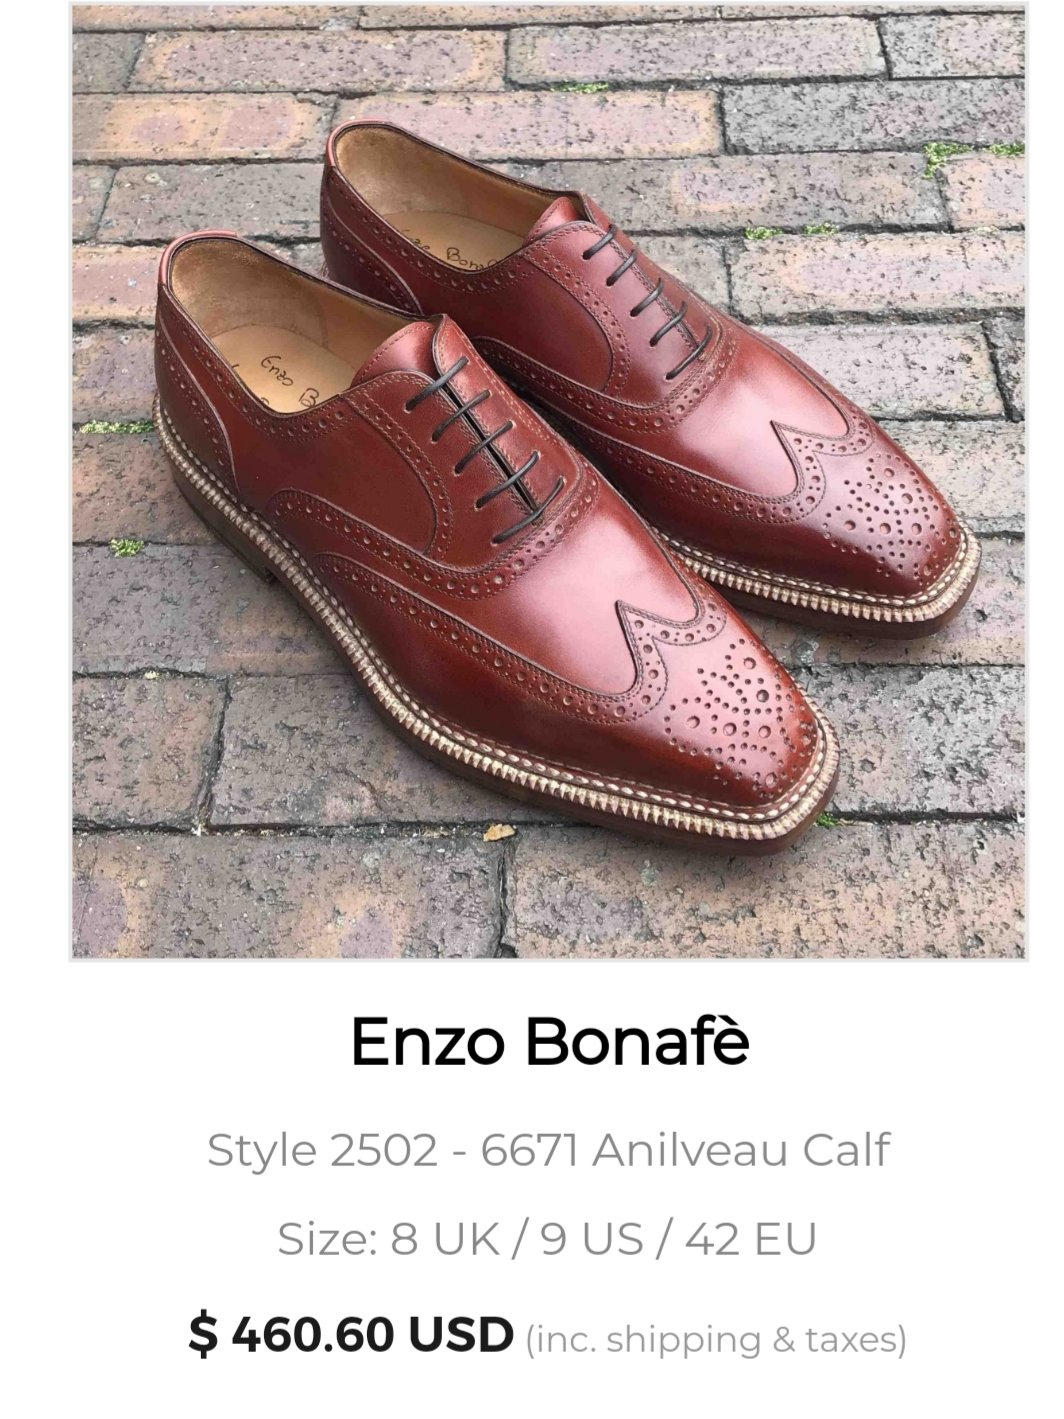 New Shoes on The Marketplace - July 2nd 2019